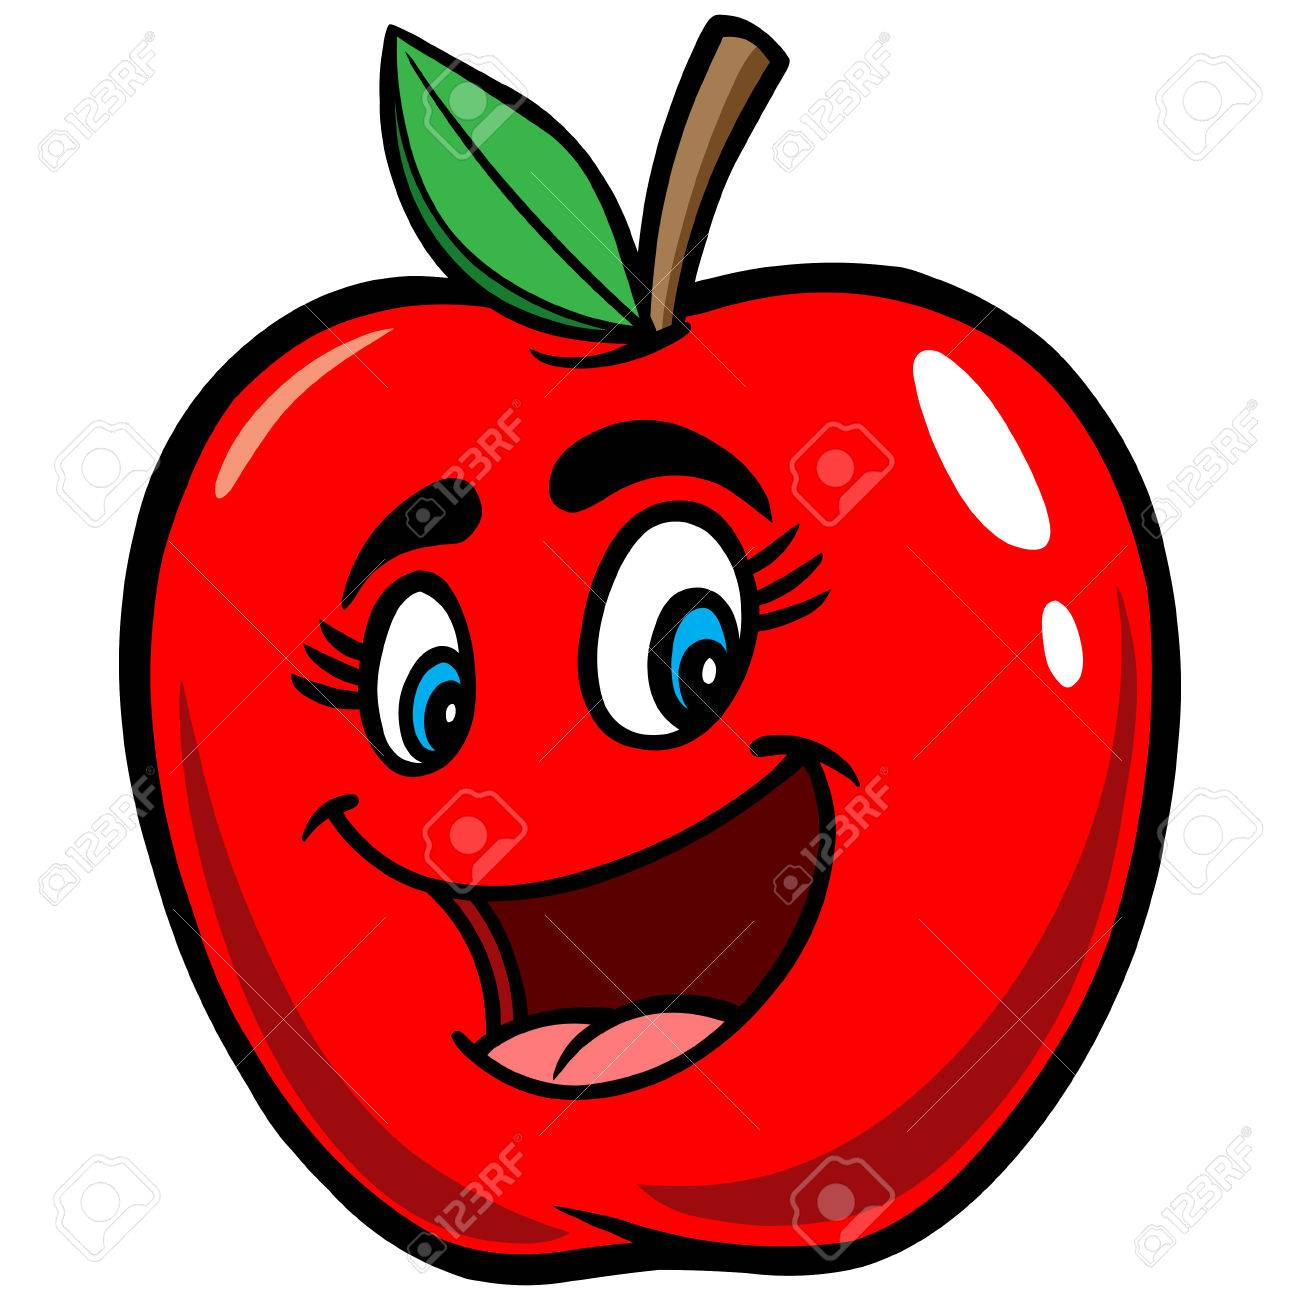 Apple Cartoon Cliparts Free Download Clip Art.